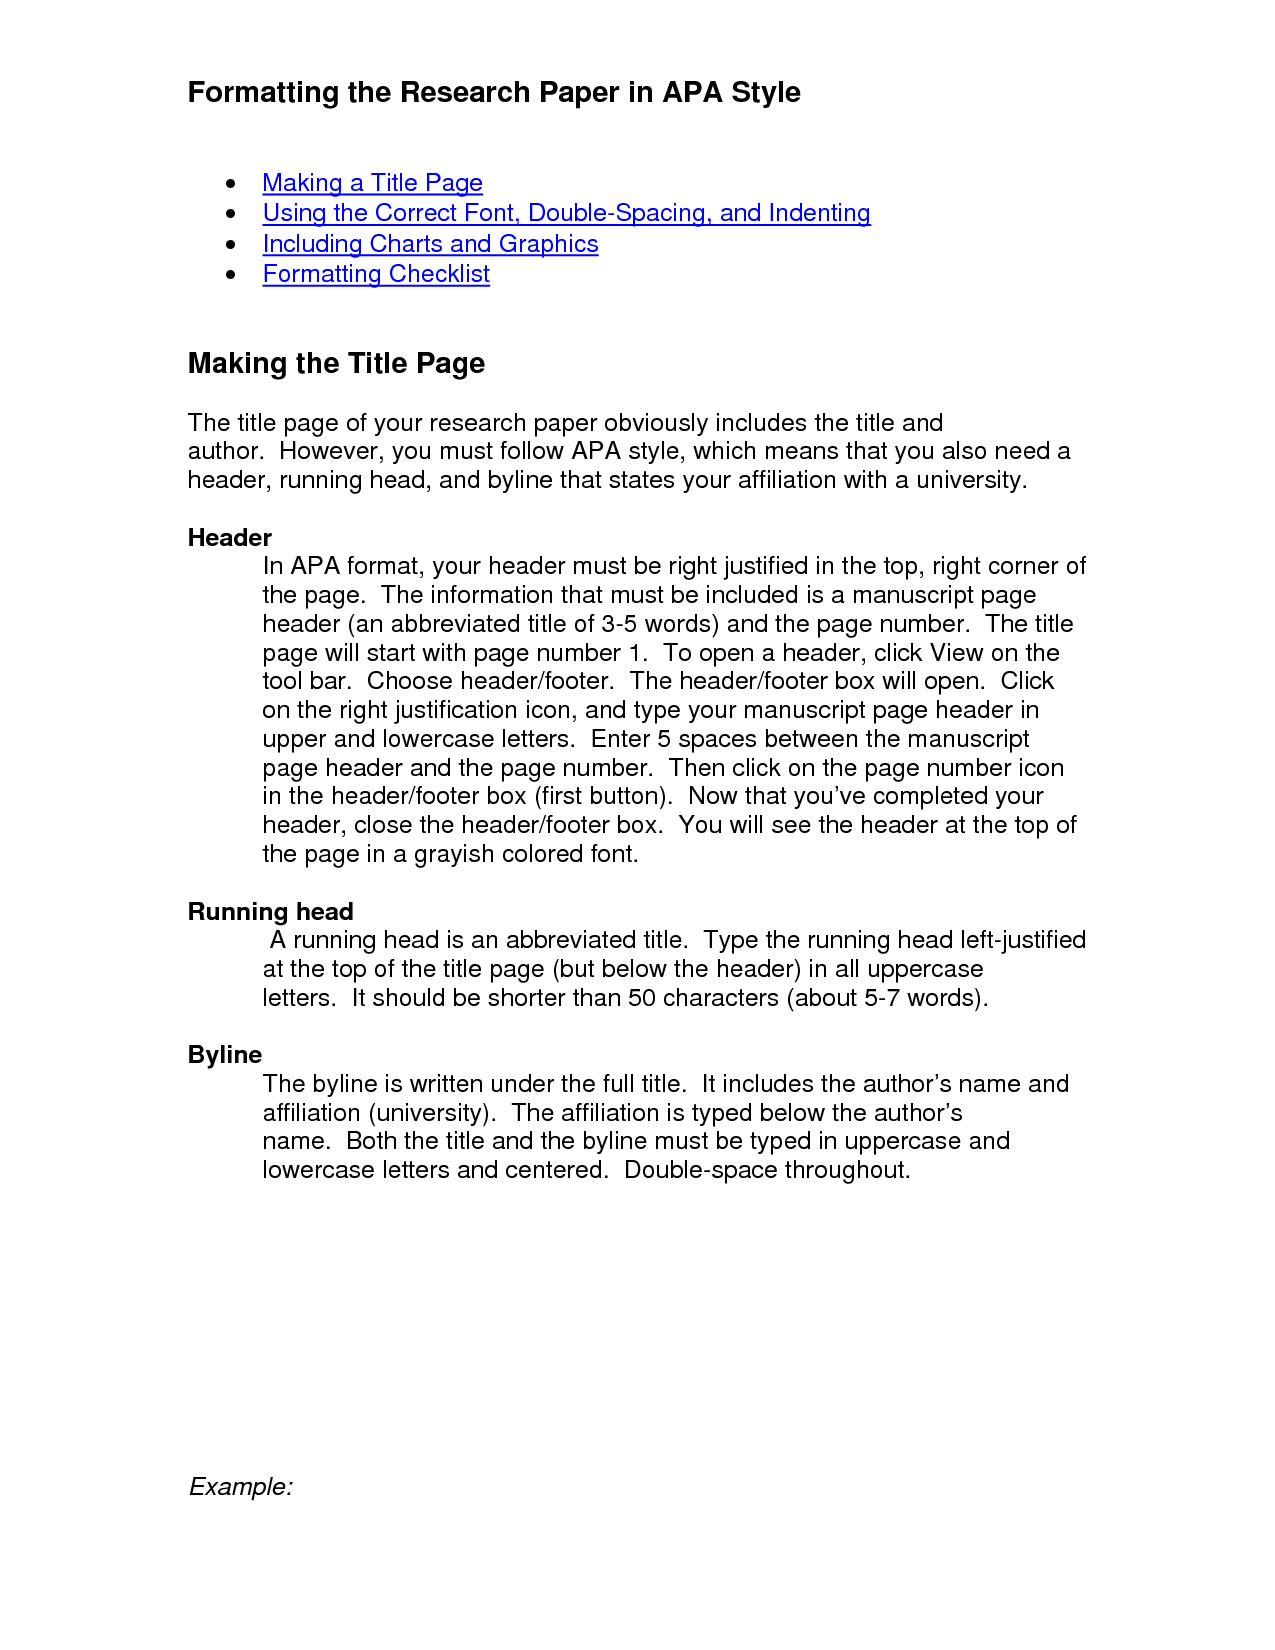 apa research paper title page multiple authors title page